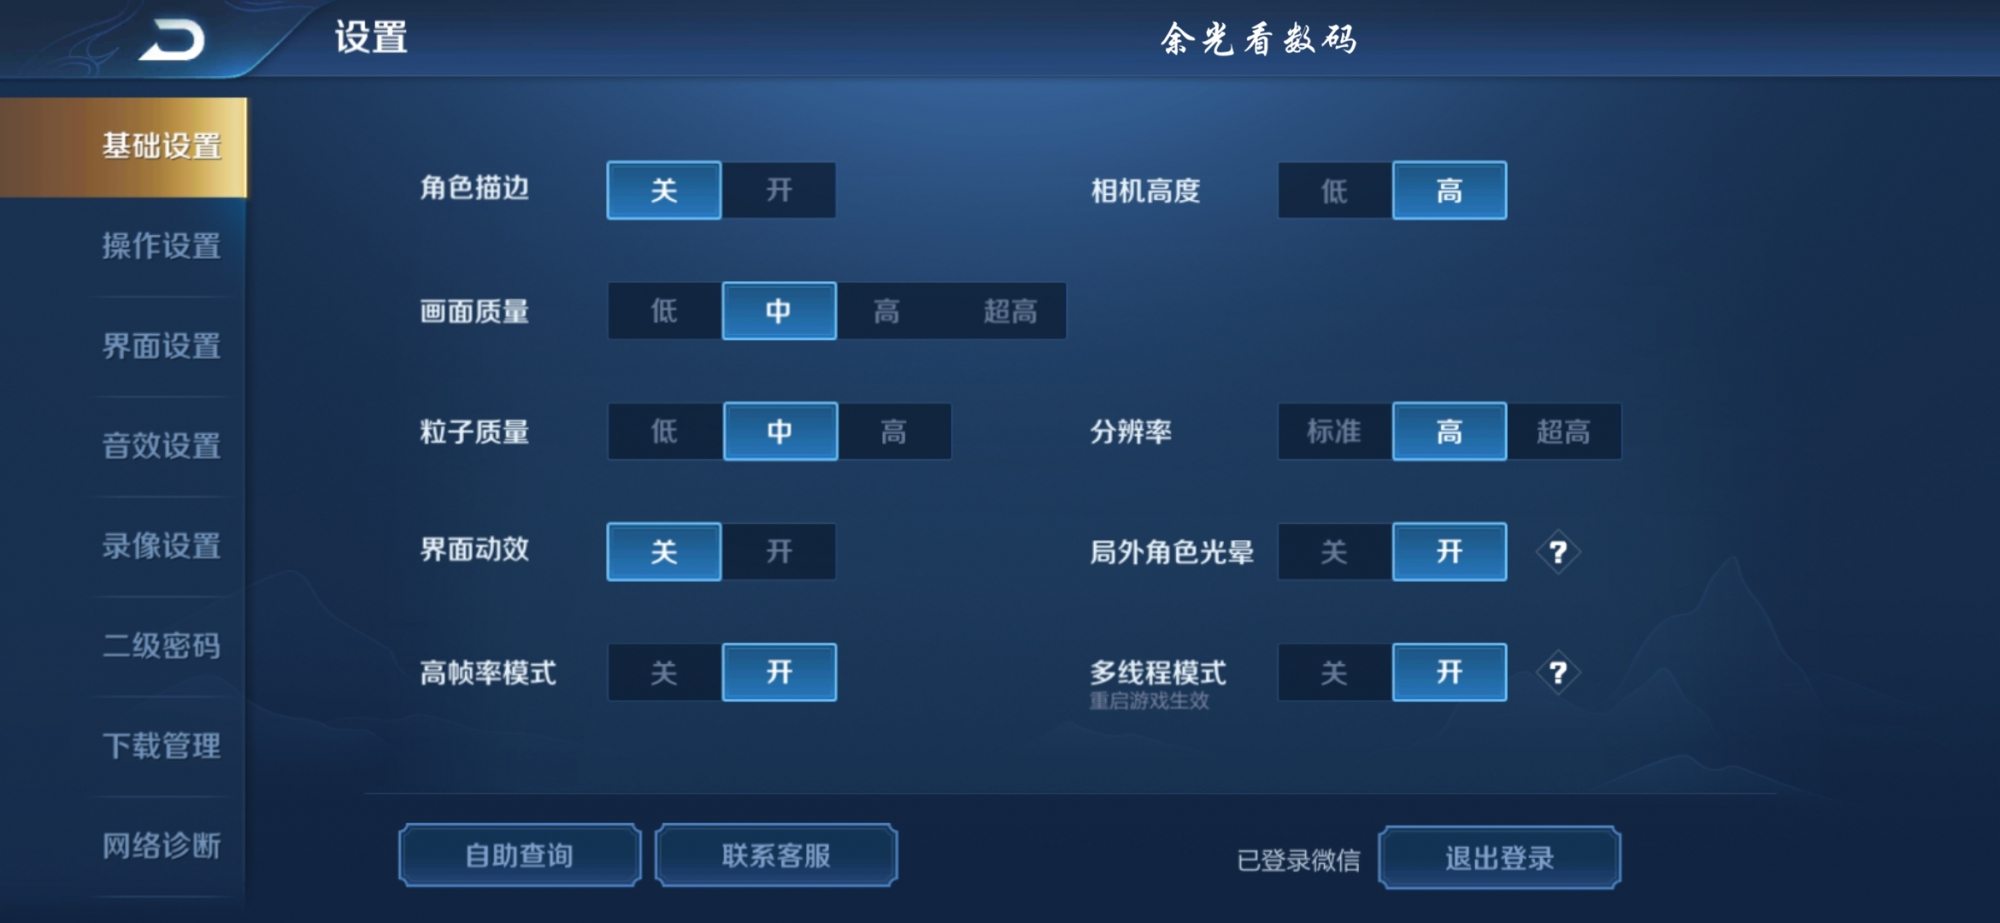 Screenshot_20190630_120914_com.tencent.tmgp.sgame.jpg